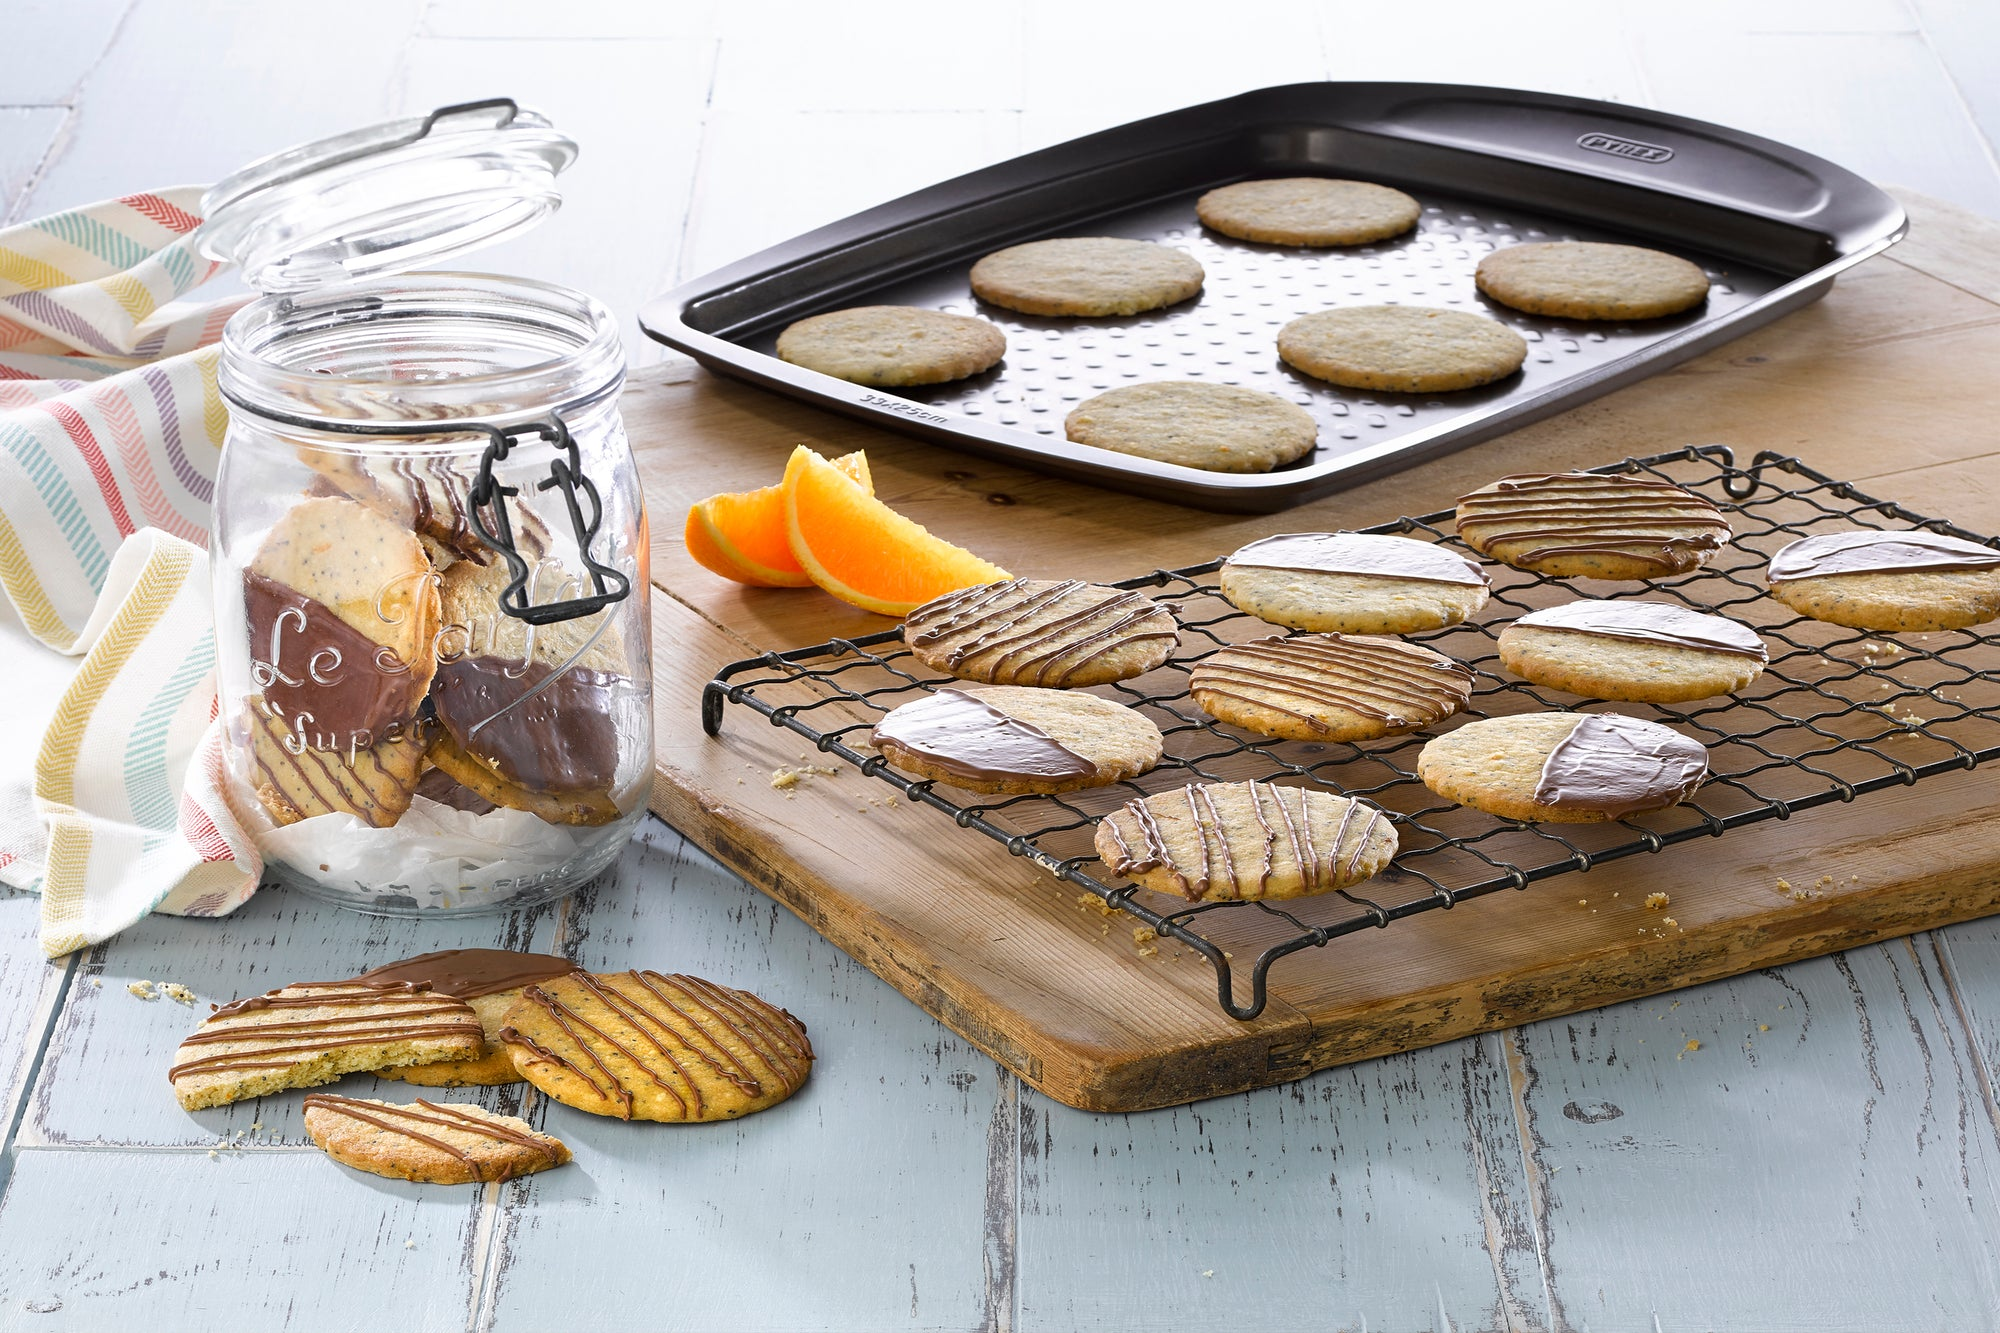 Zesty Orange, Seed and Milk Chocolate Biscuits